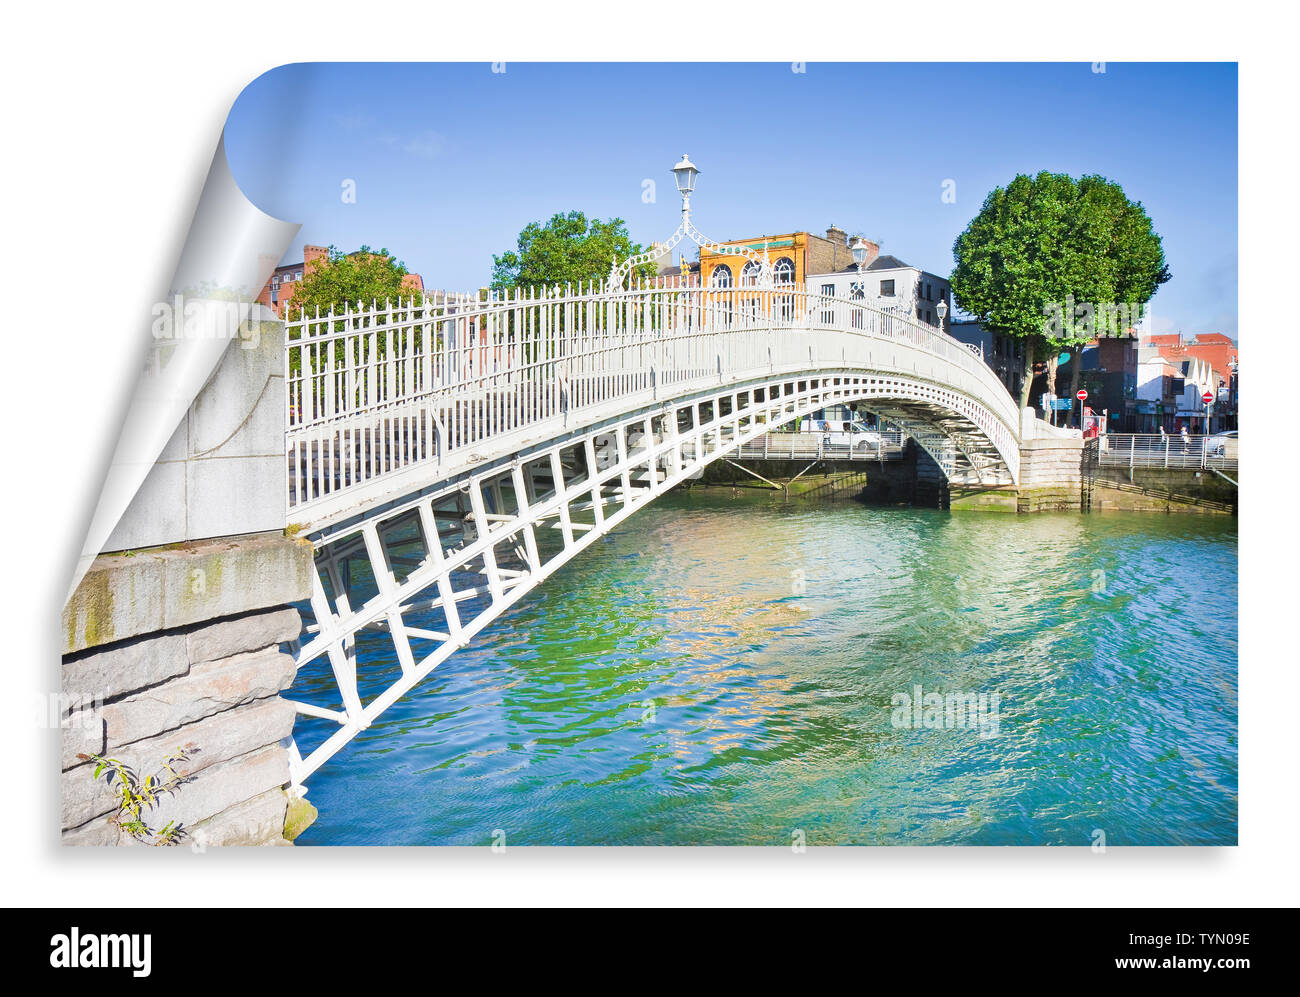 The most famous bridge in Dublin called 'Half penny bridge' due to the toll charged for the passage - curl and shadow design - Stock Image